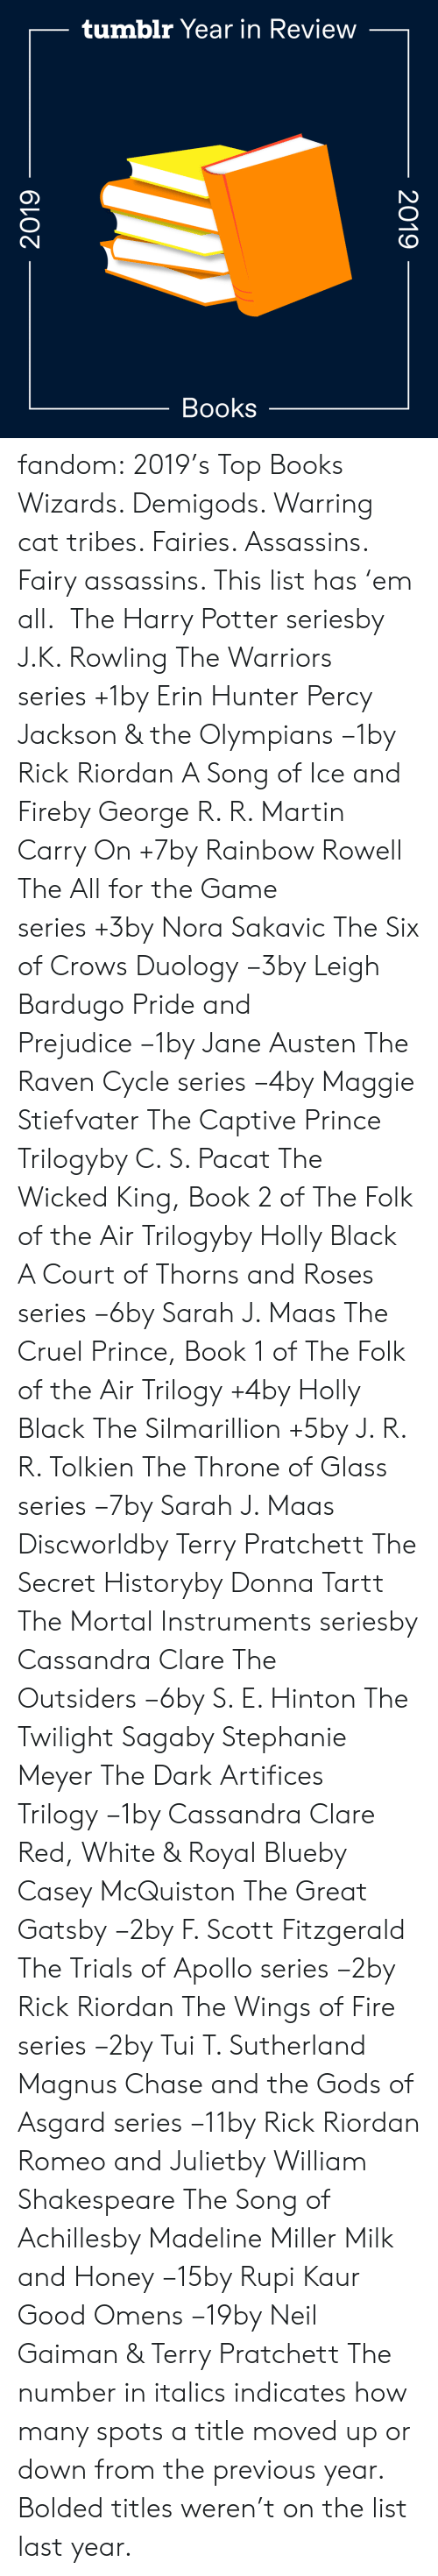 roses: tumblr Year in Review  Books  2019  2019 fandom:  2019's Top Books  Wizards. Demigods. Warring cat tribes. Fairies. Assassins. Fairy assassins. This list has 'em all.   The Harry Potter seriesby J.K. Rowling  The Warriors series +1by Erin Hunter  Percy Jackson & the Olympians −1by Rick Riordan  A Song of Ice and Fireby George R. R. Martin  Carry On +7by Rainbow Rowell  The All for the Game series +3by Nora Sakavic  The Six of Crows Duology −3by Leigh Bardugo  Pride and Prejudice −1by Jane Austen  The Raven Cycle series −4by Maggie Stiefvater  The Captive Prince Trilogyby C. S. Pacat  The Wicked King, Book 2 of The Folk of the Air Trilogyby Holly Black  A Court of Thorns and Roses series −6by Sarah J. Maas  The Cruel Prince, Book 1 of The Folk of the Air Trilogy +4by Holly Black  The Silmarillion +5by J. R. R. Tolkien  The Throne of Glass series −7by Sarah J. Maas  Discworldby Terry Pratchett  The Secret Historyby Donna Tartt  The Mortal Instruments seriesby Cassandra Clare  The Outsiders −6by S. E. Hinton  The Twilight Sagaby Stephanie Meyer  The Dark Artifices Trilogy −1by Cassandra Clare  Red, White & Royal Blueby Casey McQuiston  The Great Gatsby −2by F. Scott Fitzgerald  The Trials of Apollo series −2by Rick Riordan  The Wings of Fire series −2by Tui T. Sutherland  Magnus Chase and the Gods of Asgard series −11by Rick Riordan  Romeo and Julietby William Shakespeare  The Song of Achillesby Madeline Miller  Milk and Honey −15by Rupi Kaur  Good Omens −19by Neil Gaiman & Terry Pratchett The number in italics indicates how many spots a title moved up or down from the previous year. Bolded titles weren't on the list last year.